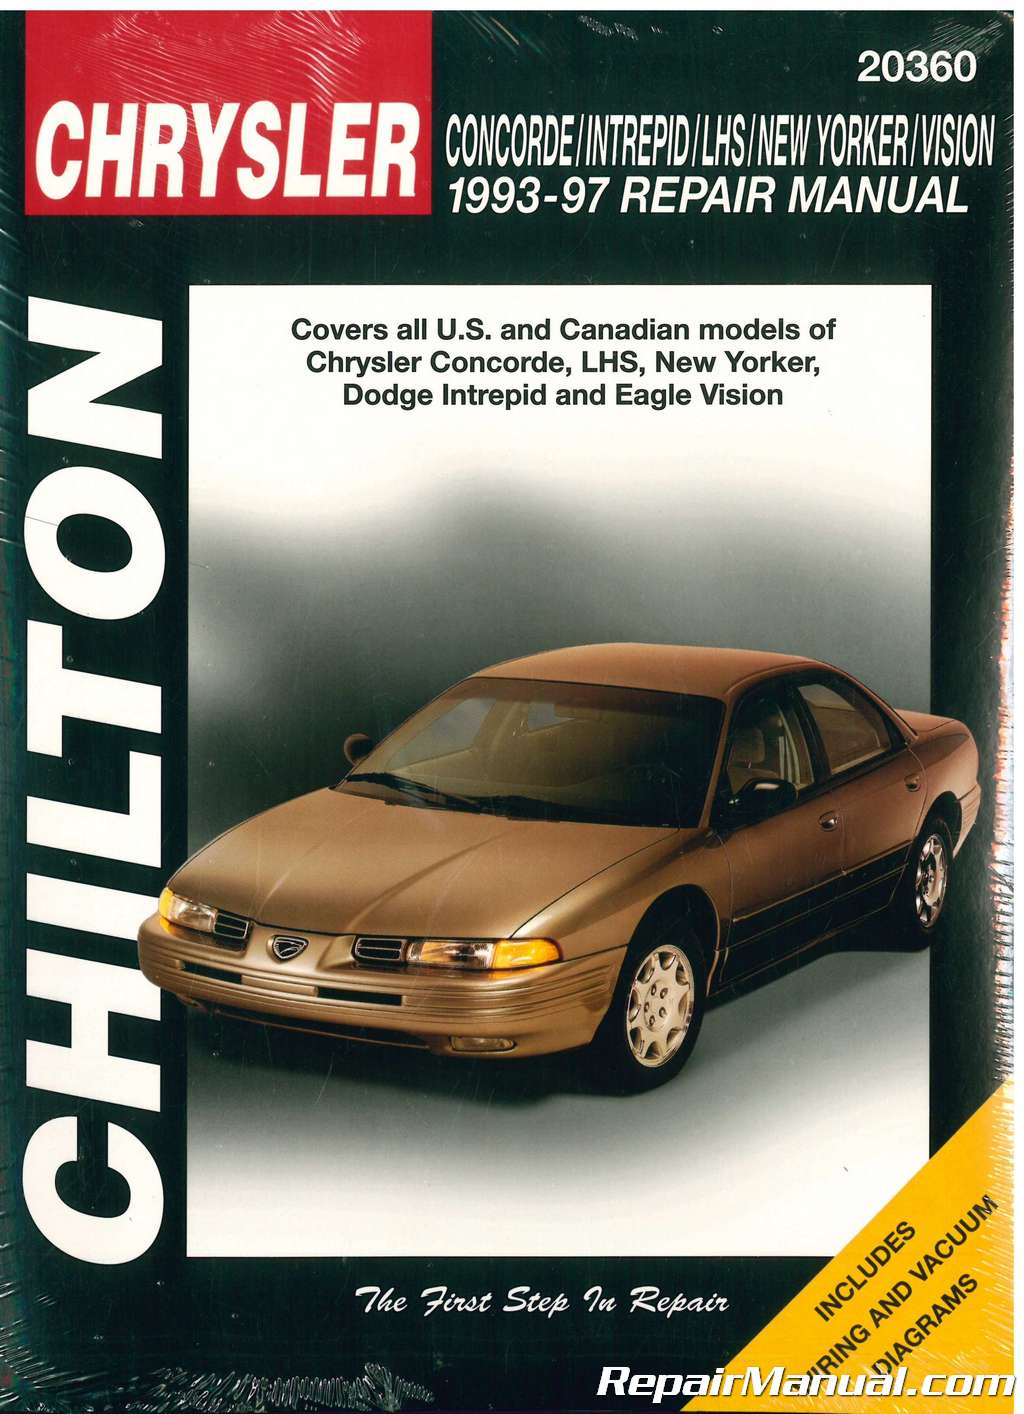 Chilton Chrysler Concorde Intrepid New Yorker Lhs Vision 1993 1997 1995 Wiring Diagram Repair Manual 001